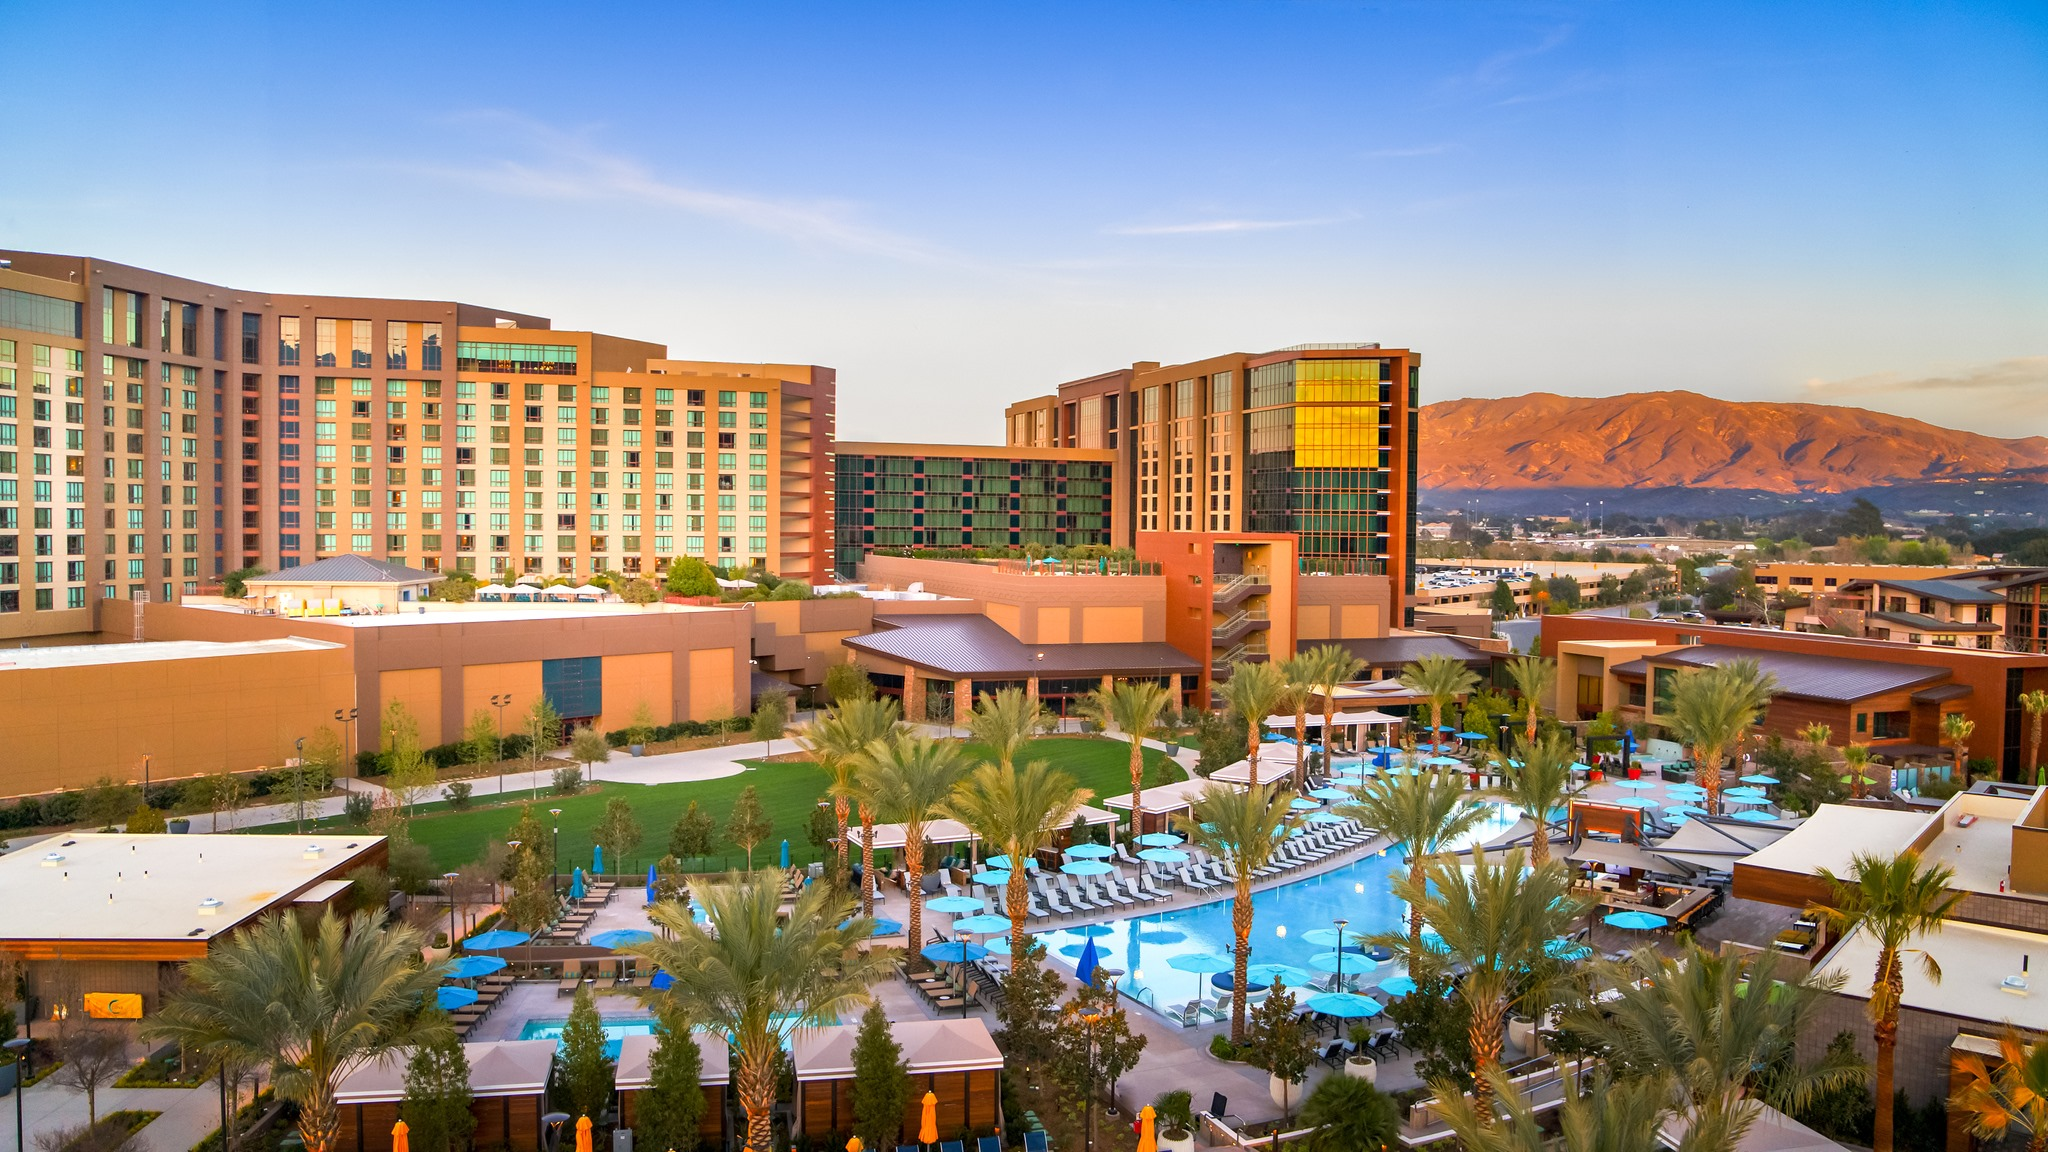 Pechanga Resort Casino is seen in an image posted to its Facebook Page.